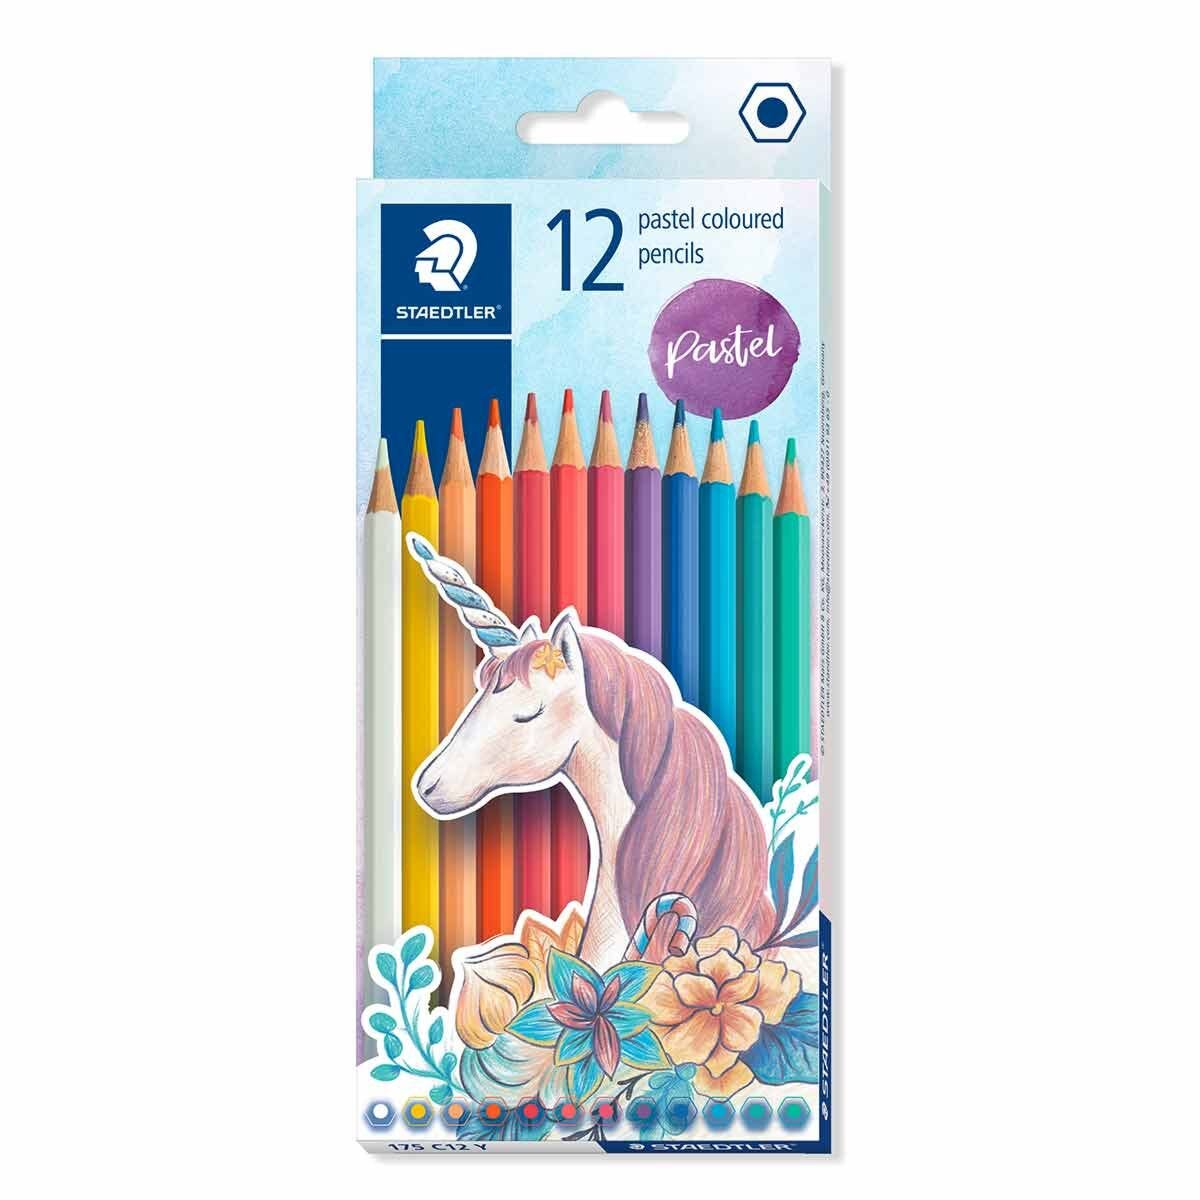 Staedtler Pastel Colouring Pencils 12 Pack